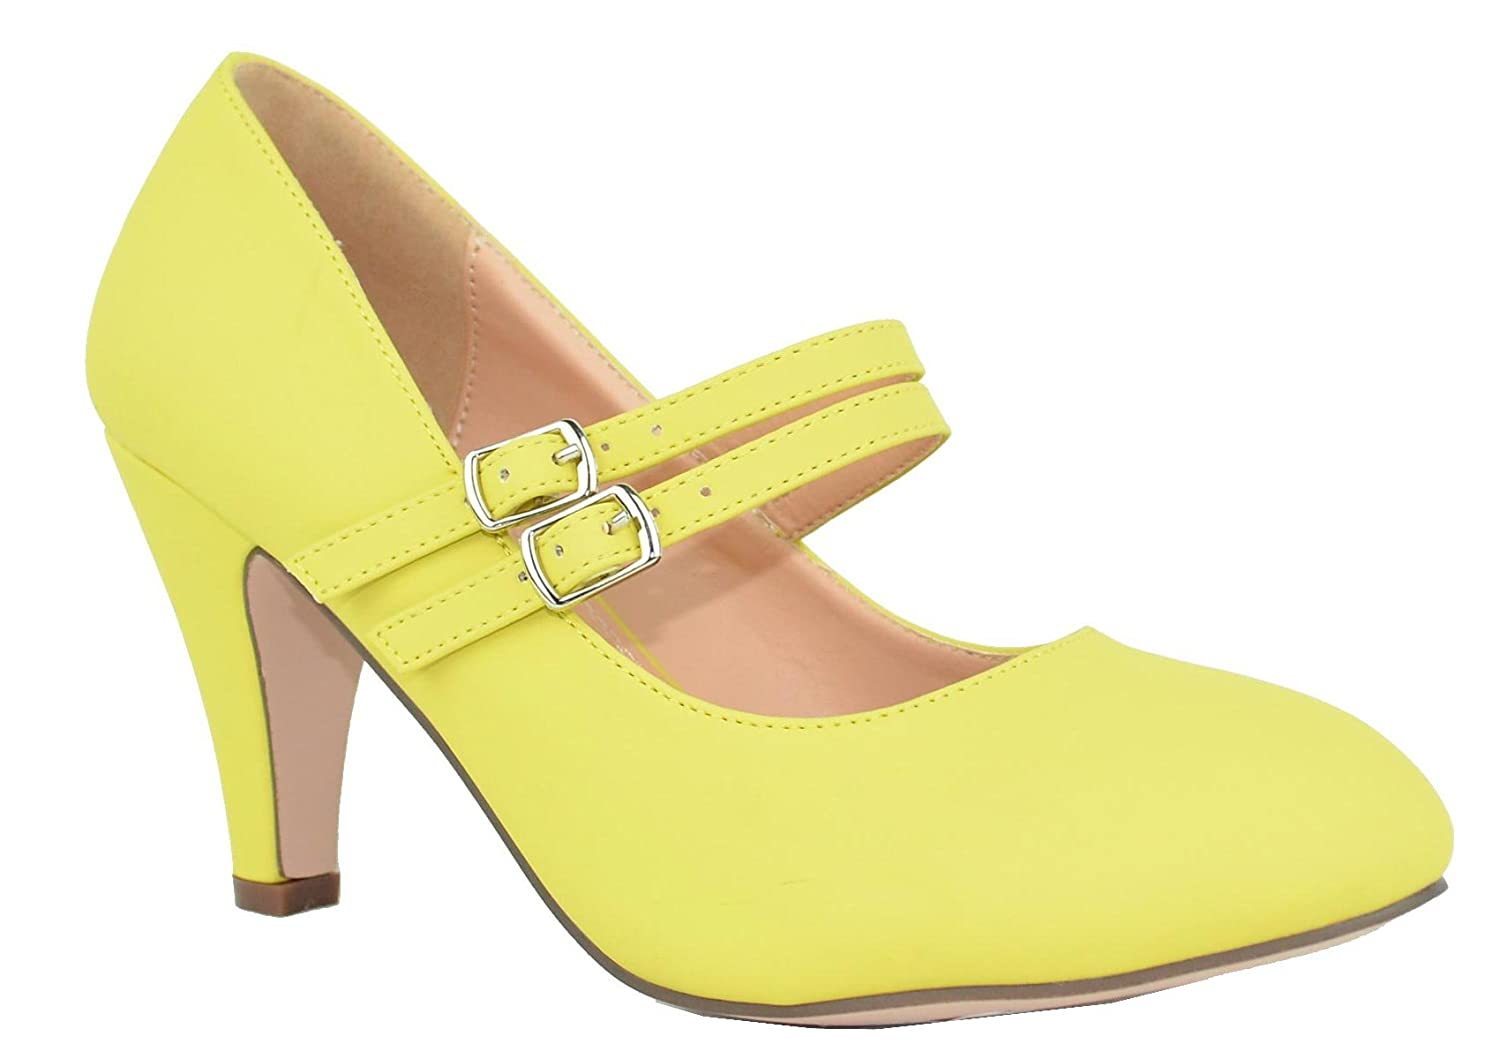 Chase & Chloe Double Kimmy-61 Women's Mary Jane Double Chloe Strap Buckle Pump B073WLQP23 7.5 B(M) US|Yellow c498bf